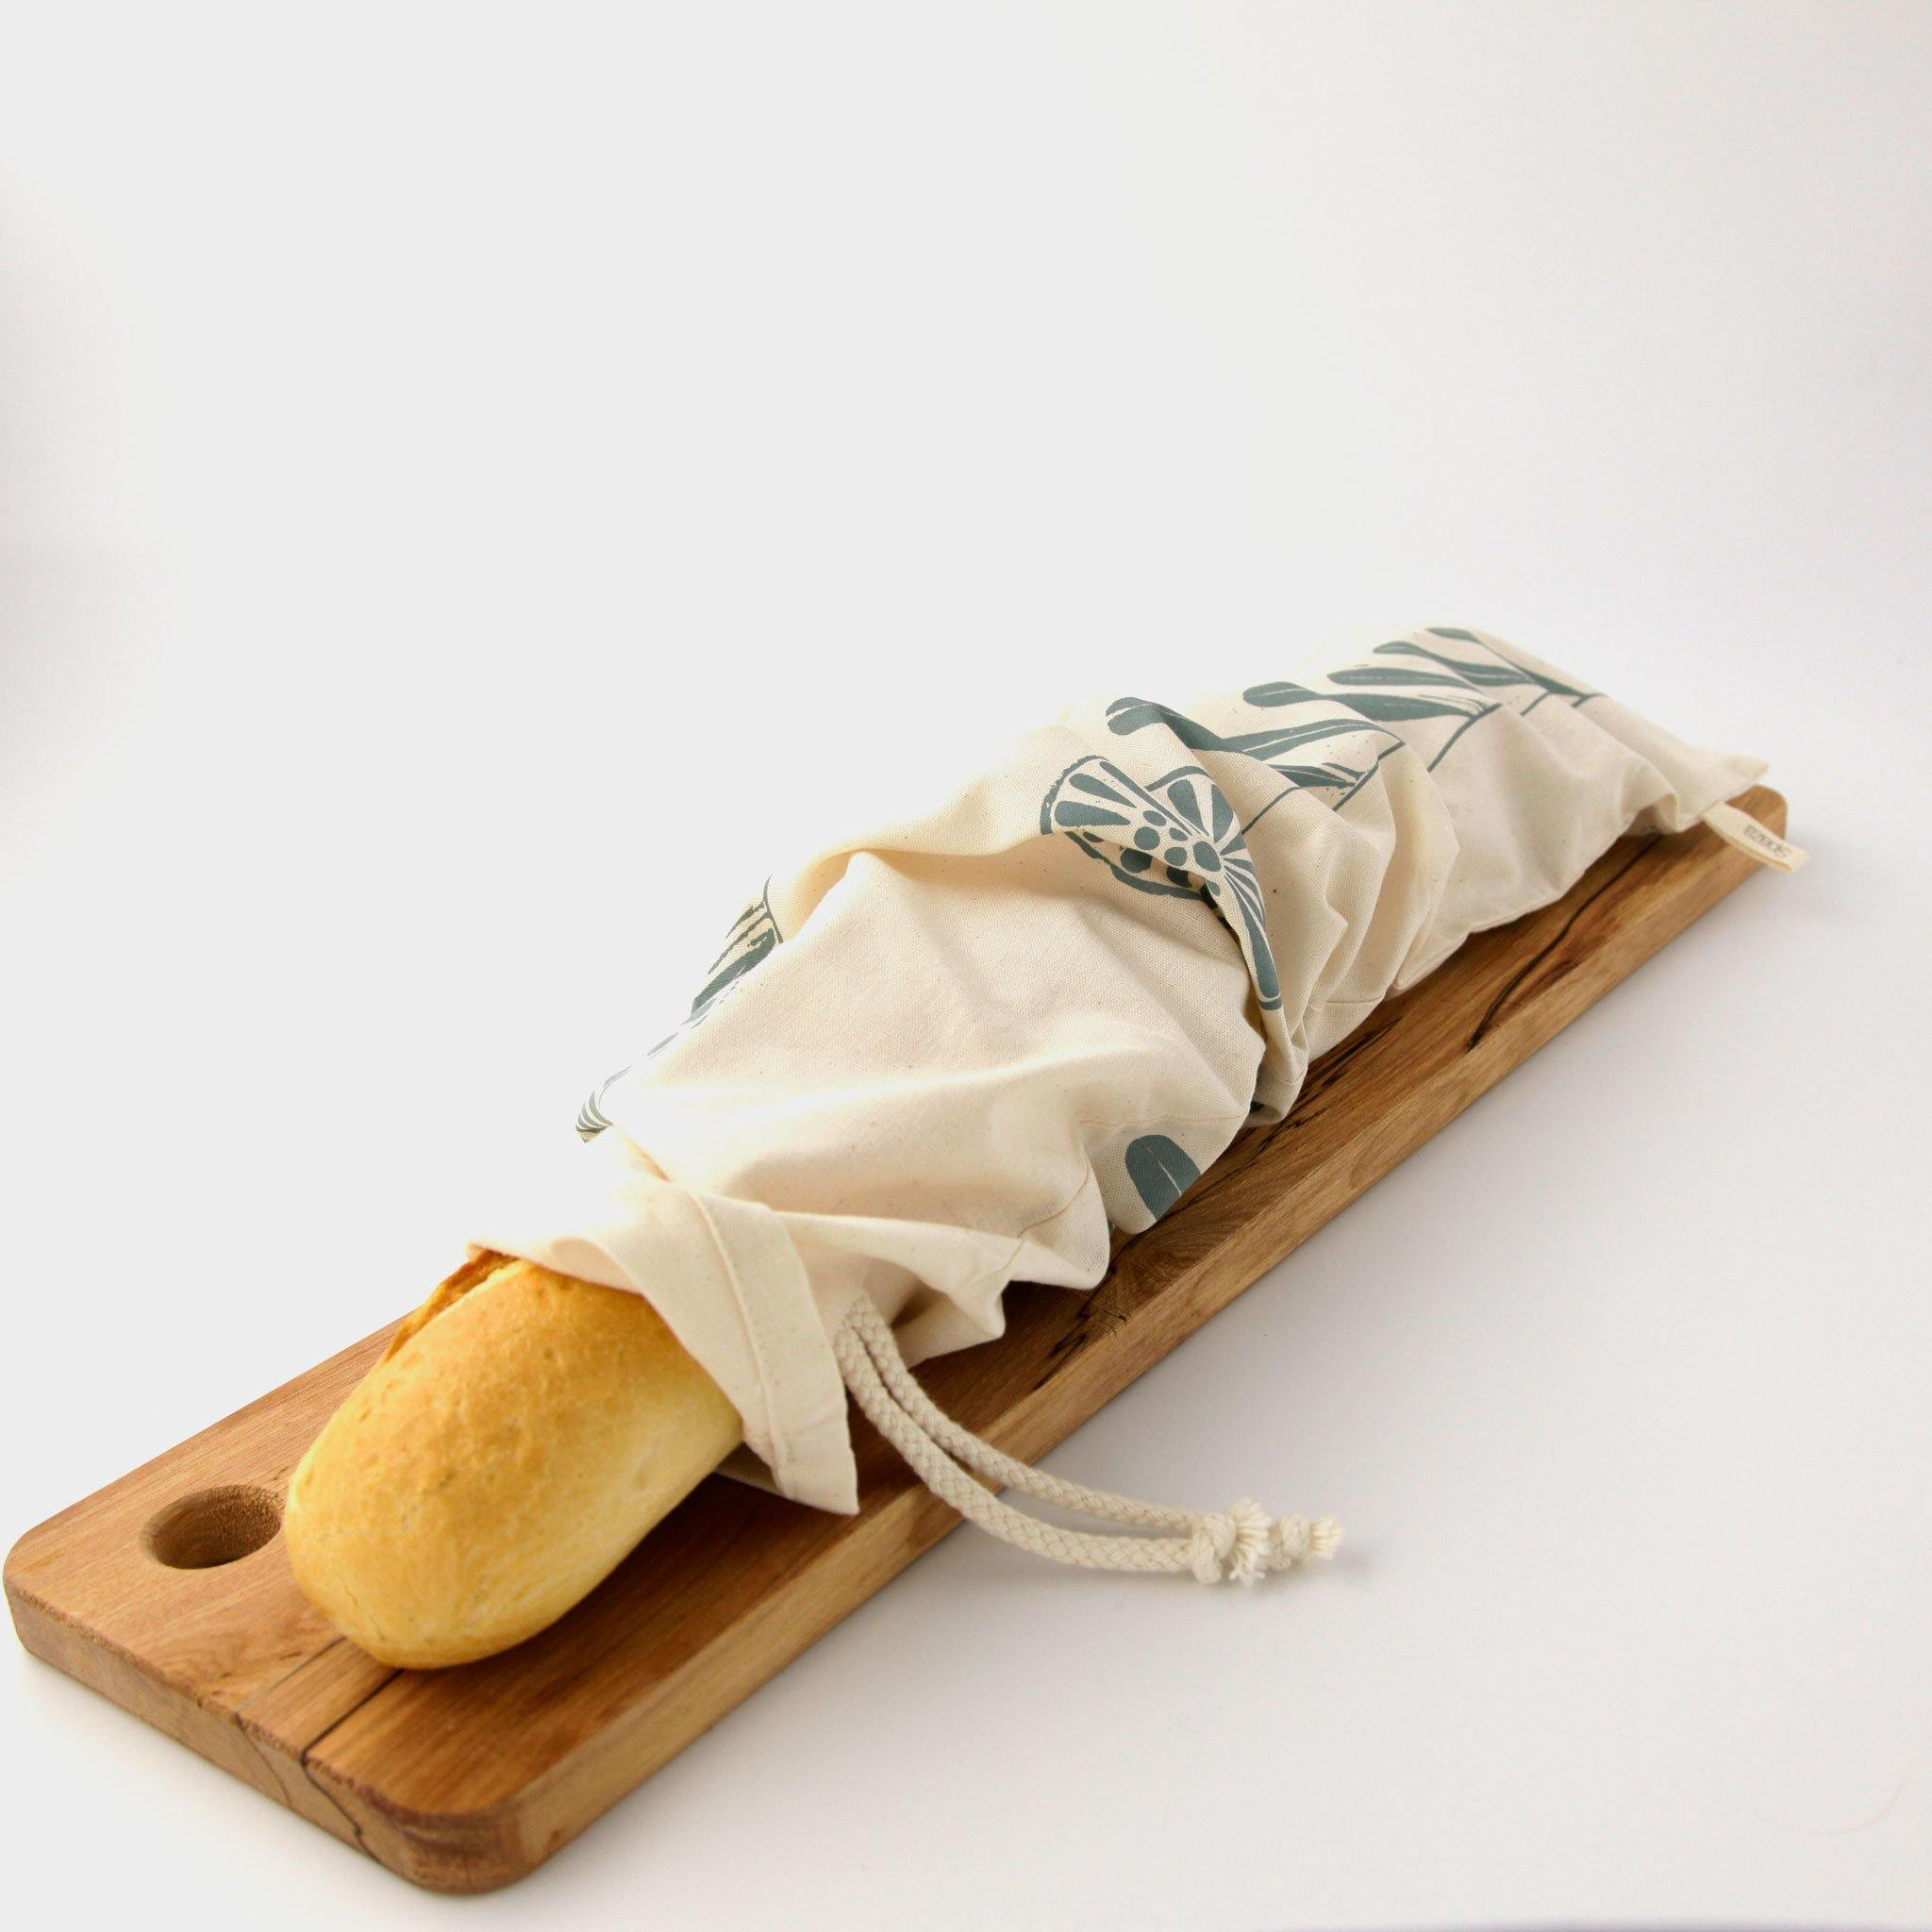 Baguette Bag | crispy bread storage